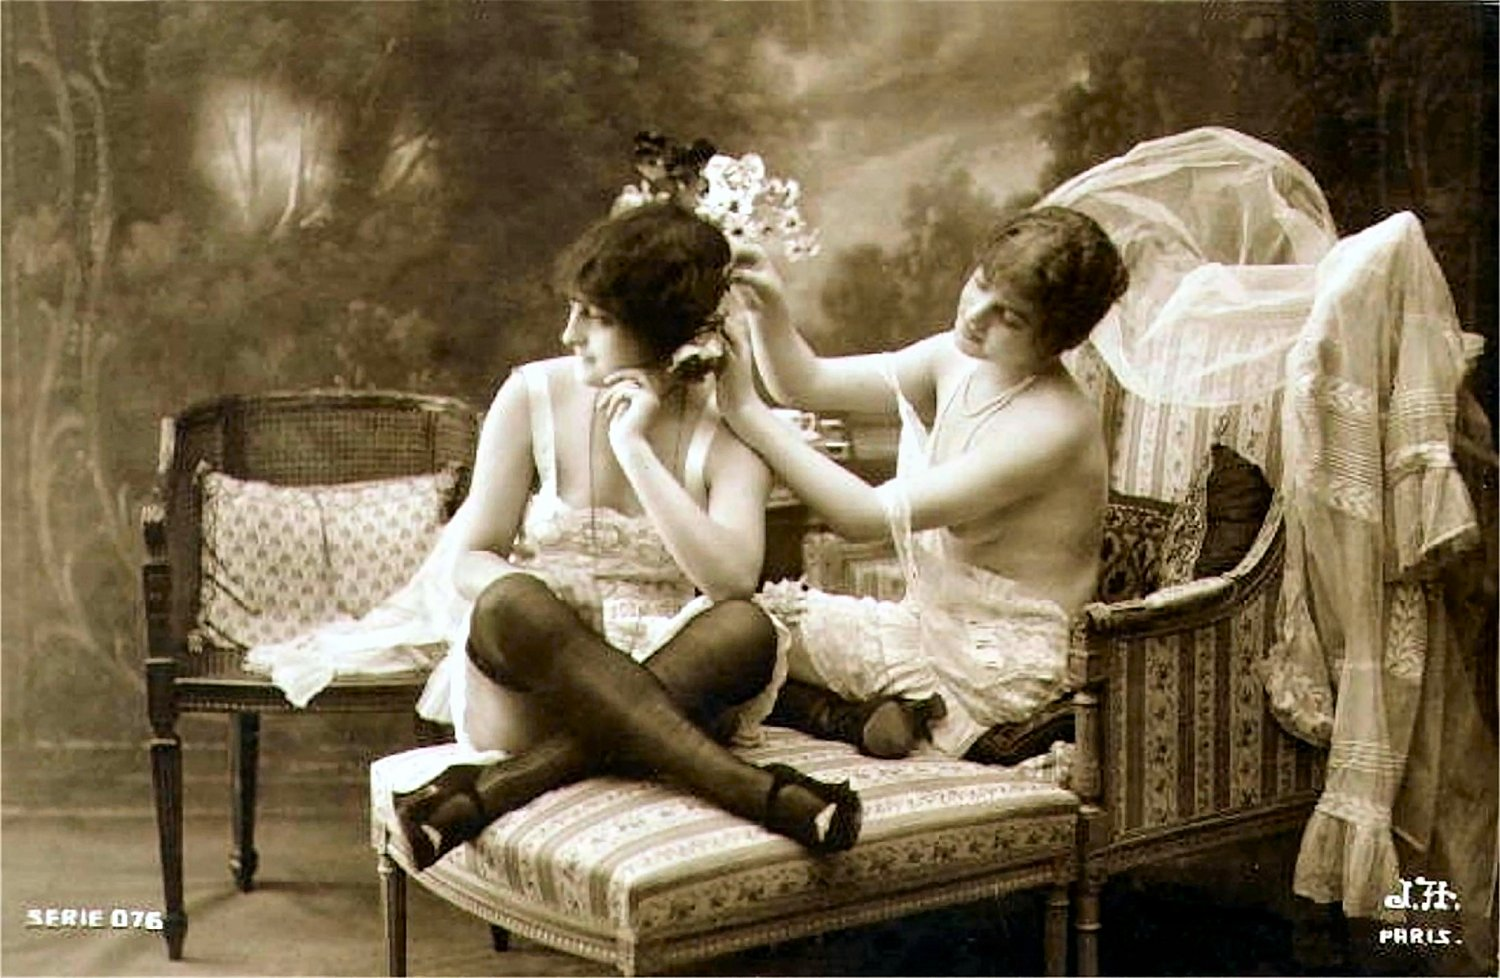 vintage erotic image in downloadable and printable digital format.